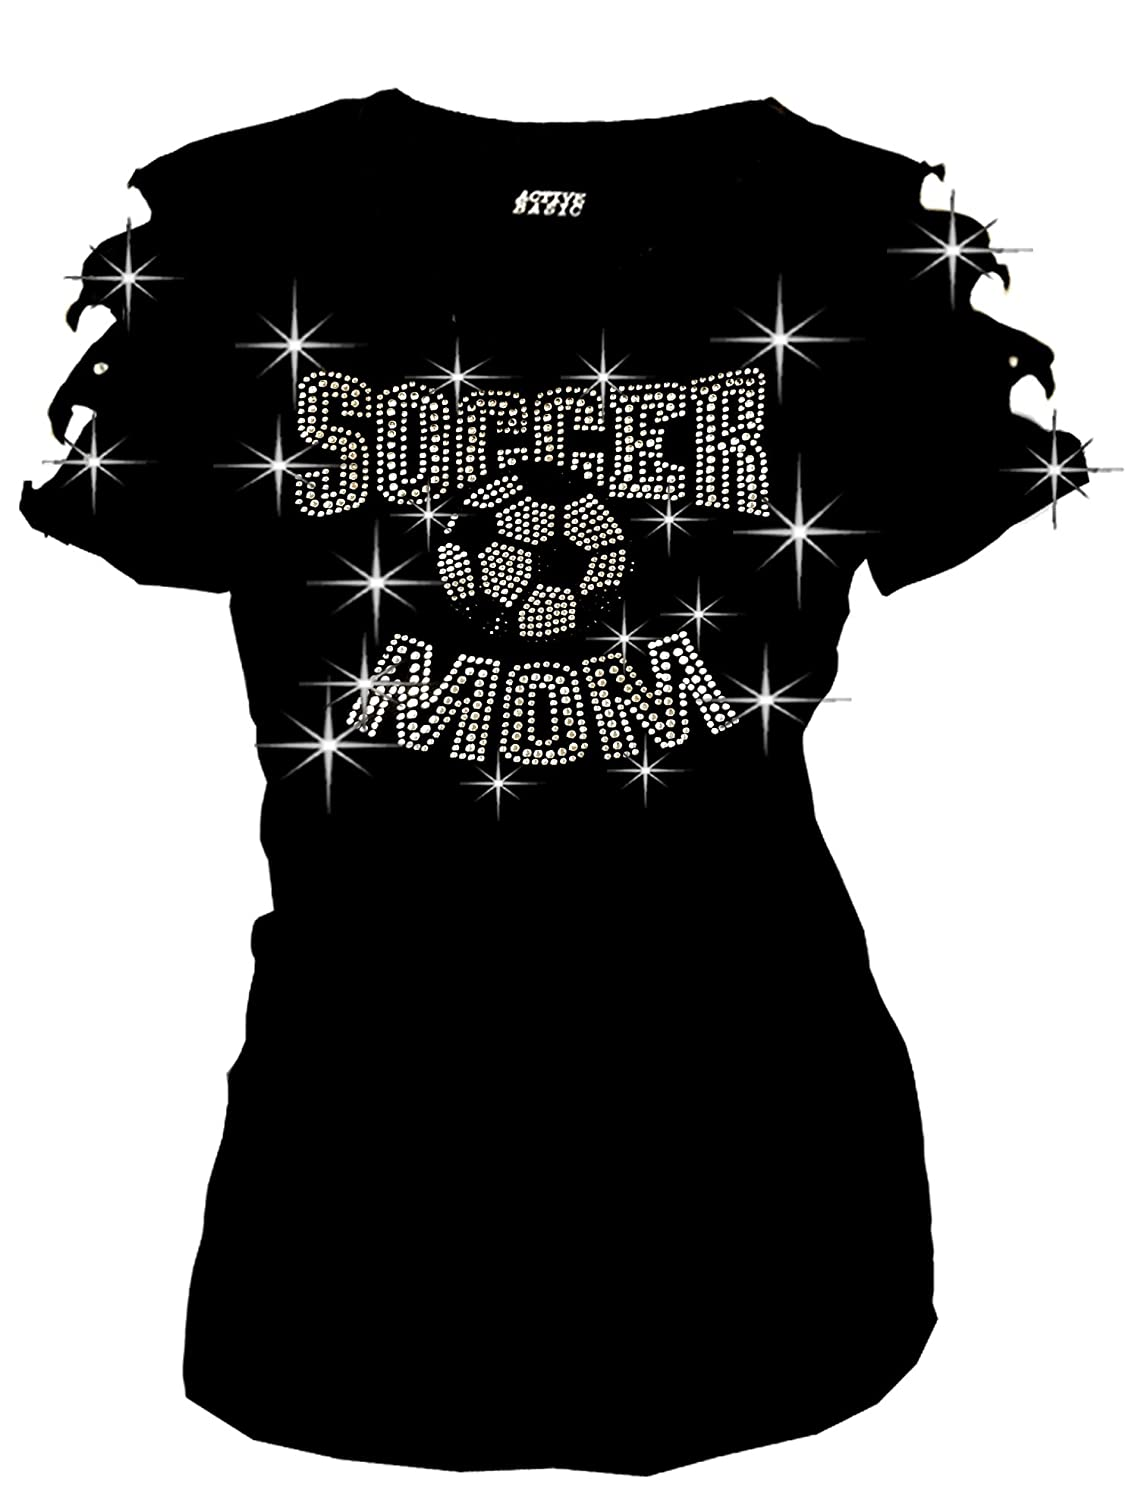 Fashion2ne1 Soccer Mom Bling Bling Rhinestone Soccer Ball T-Shirt Ripped  Cut Out at Amazon Women s Clothing store  260a63c9e997